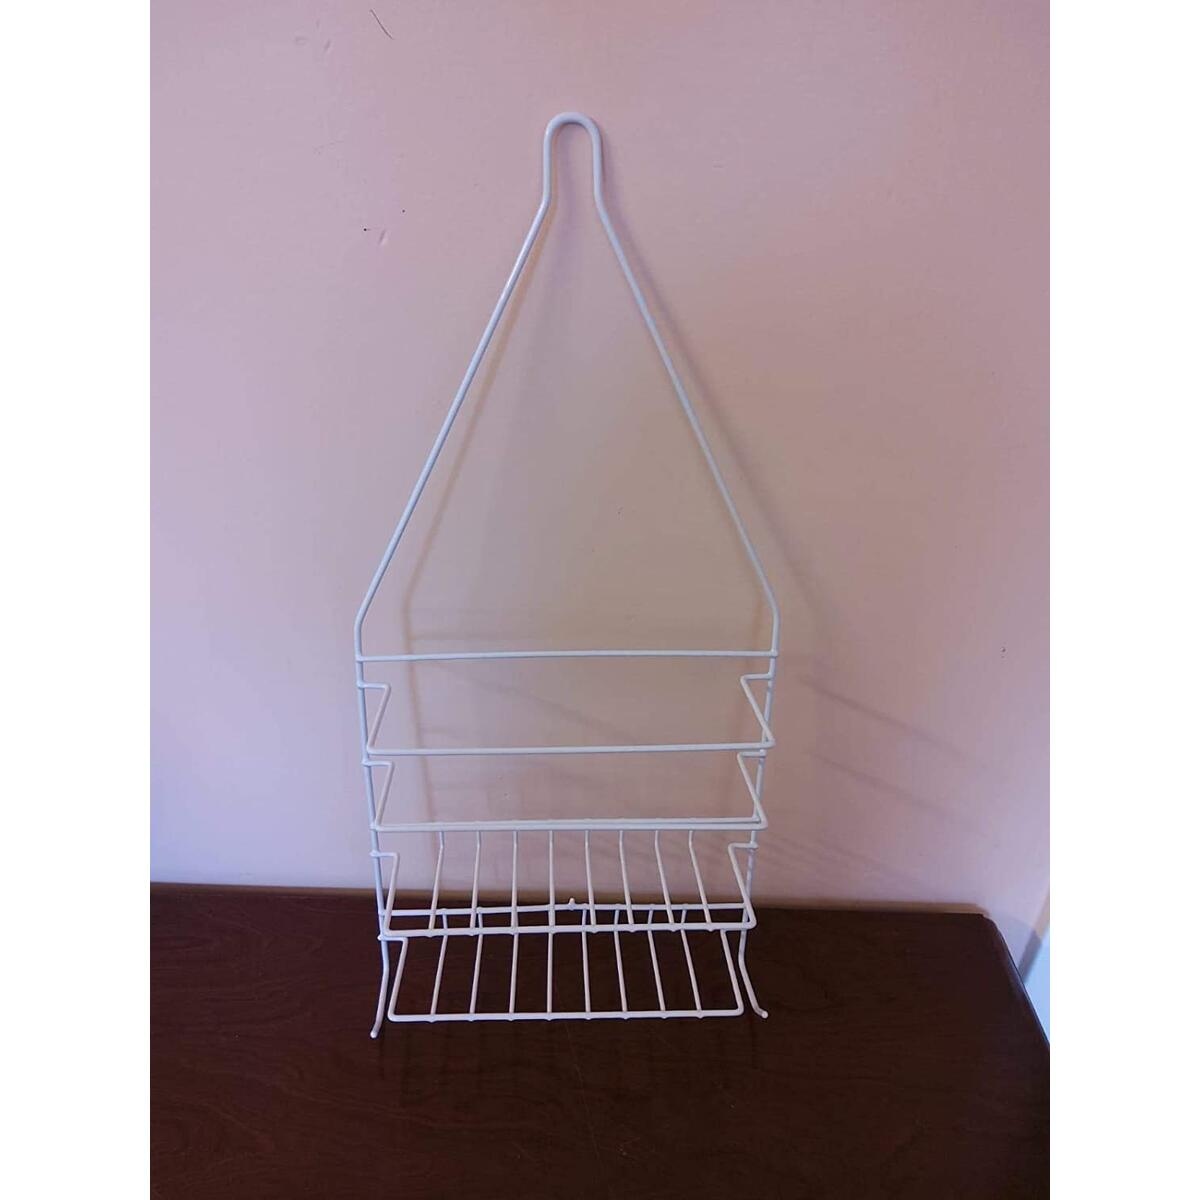 Shower Caddy Small - Hanging Shower Caddy with Sleek Design - Wired Shower Caddy with White Plastic Covering Rustproof Easy to Wash - Over the Shower Caddy Organizer with Hooks & 2 Tiers - 18